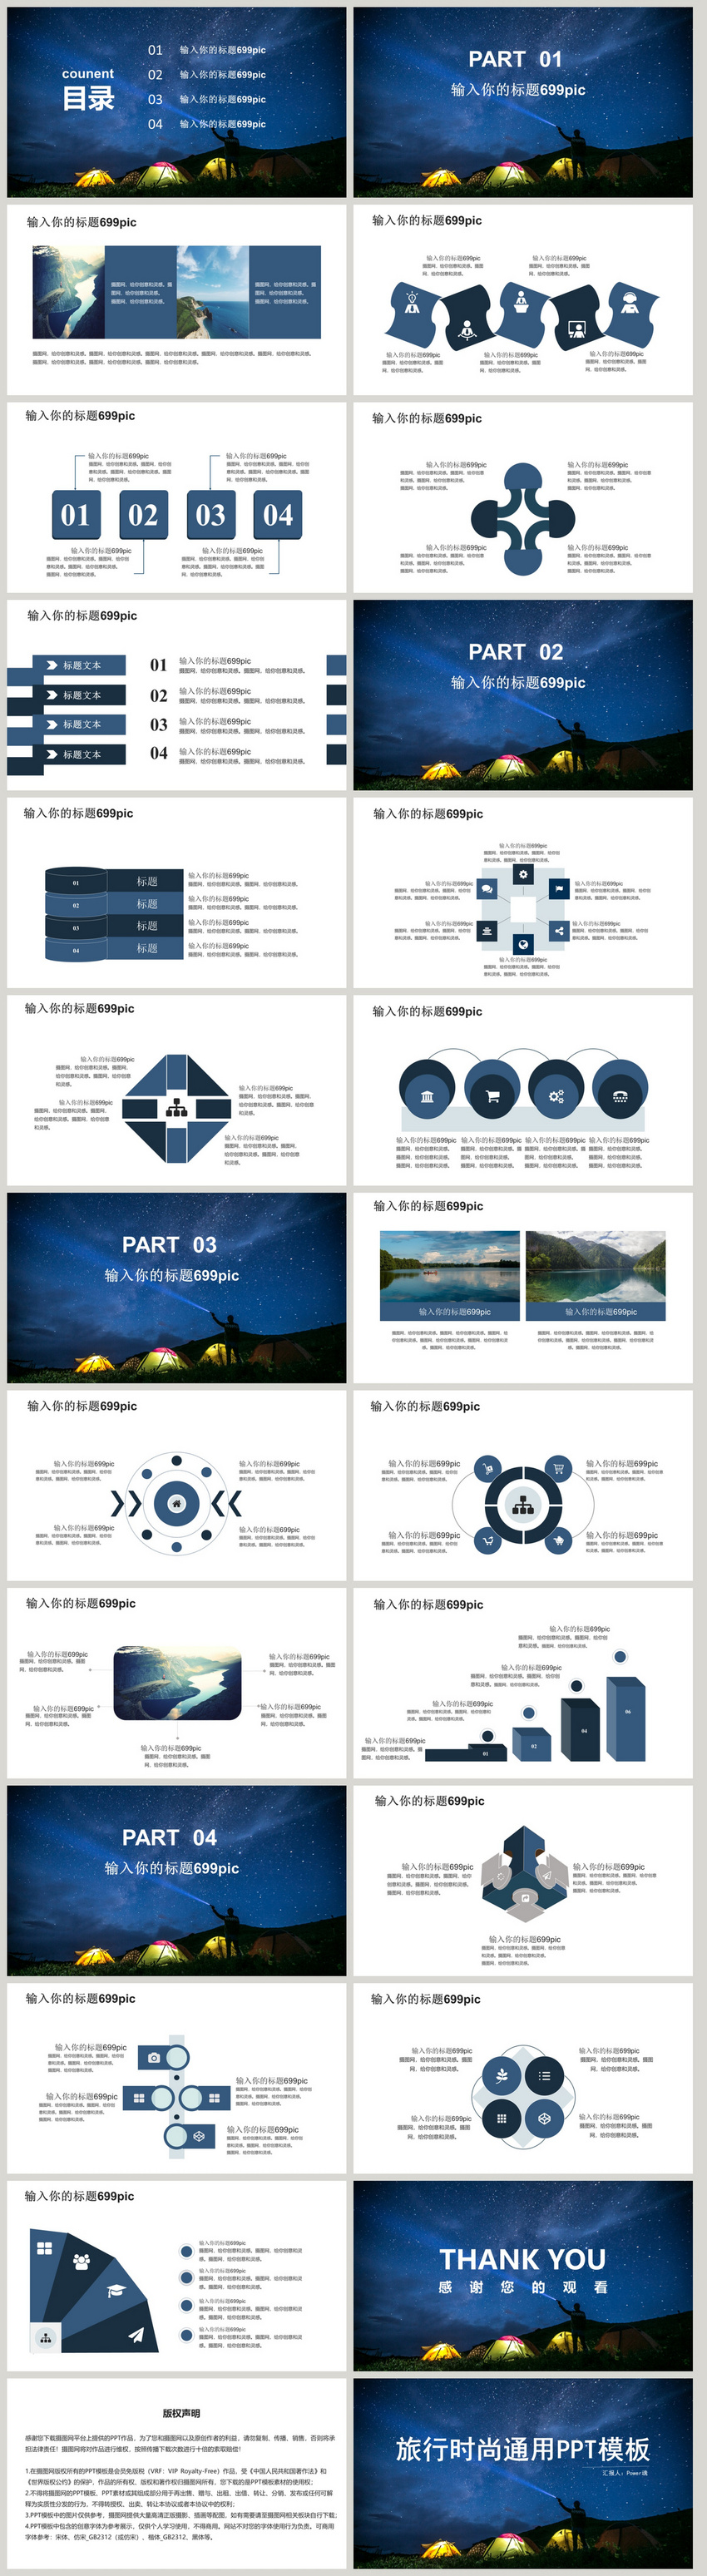 General ppt template for tourism fashion powerpoint